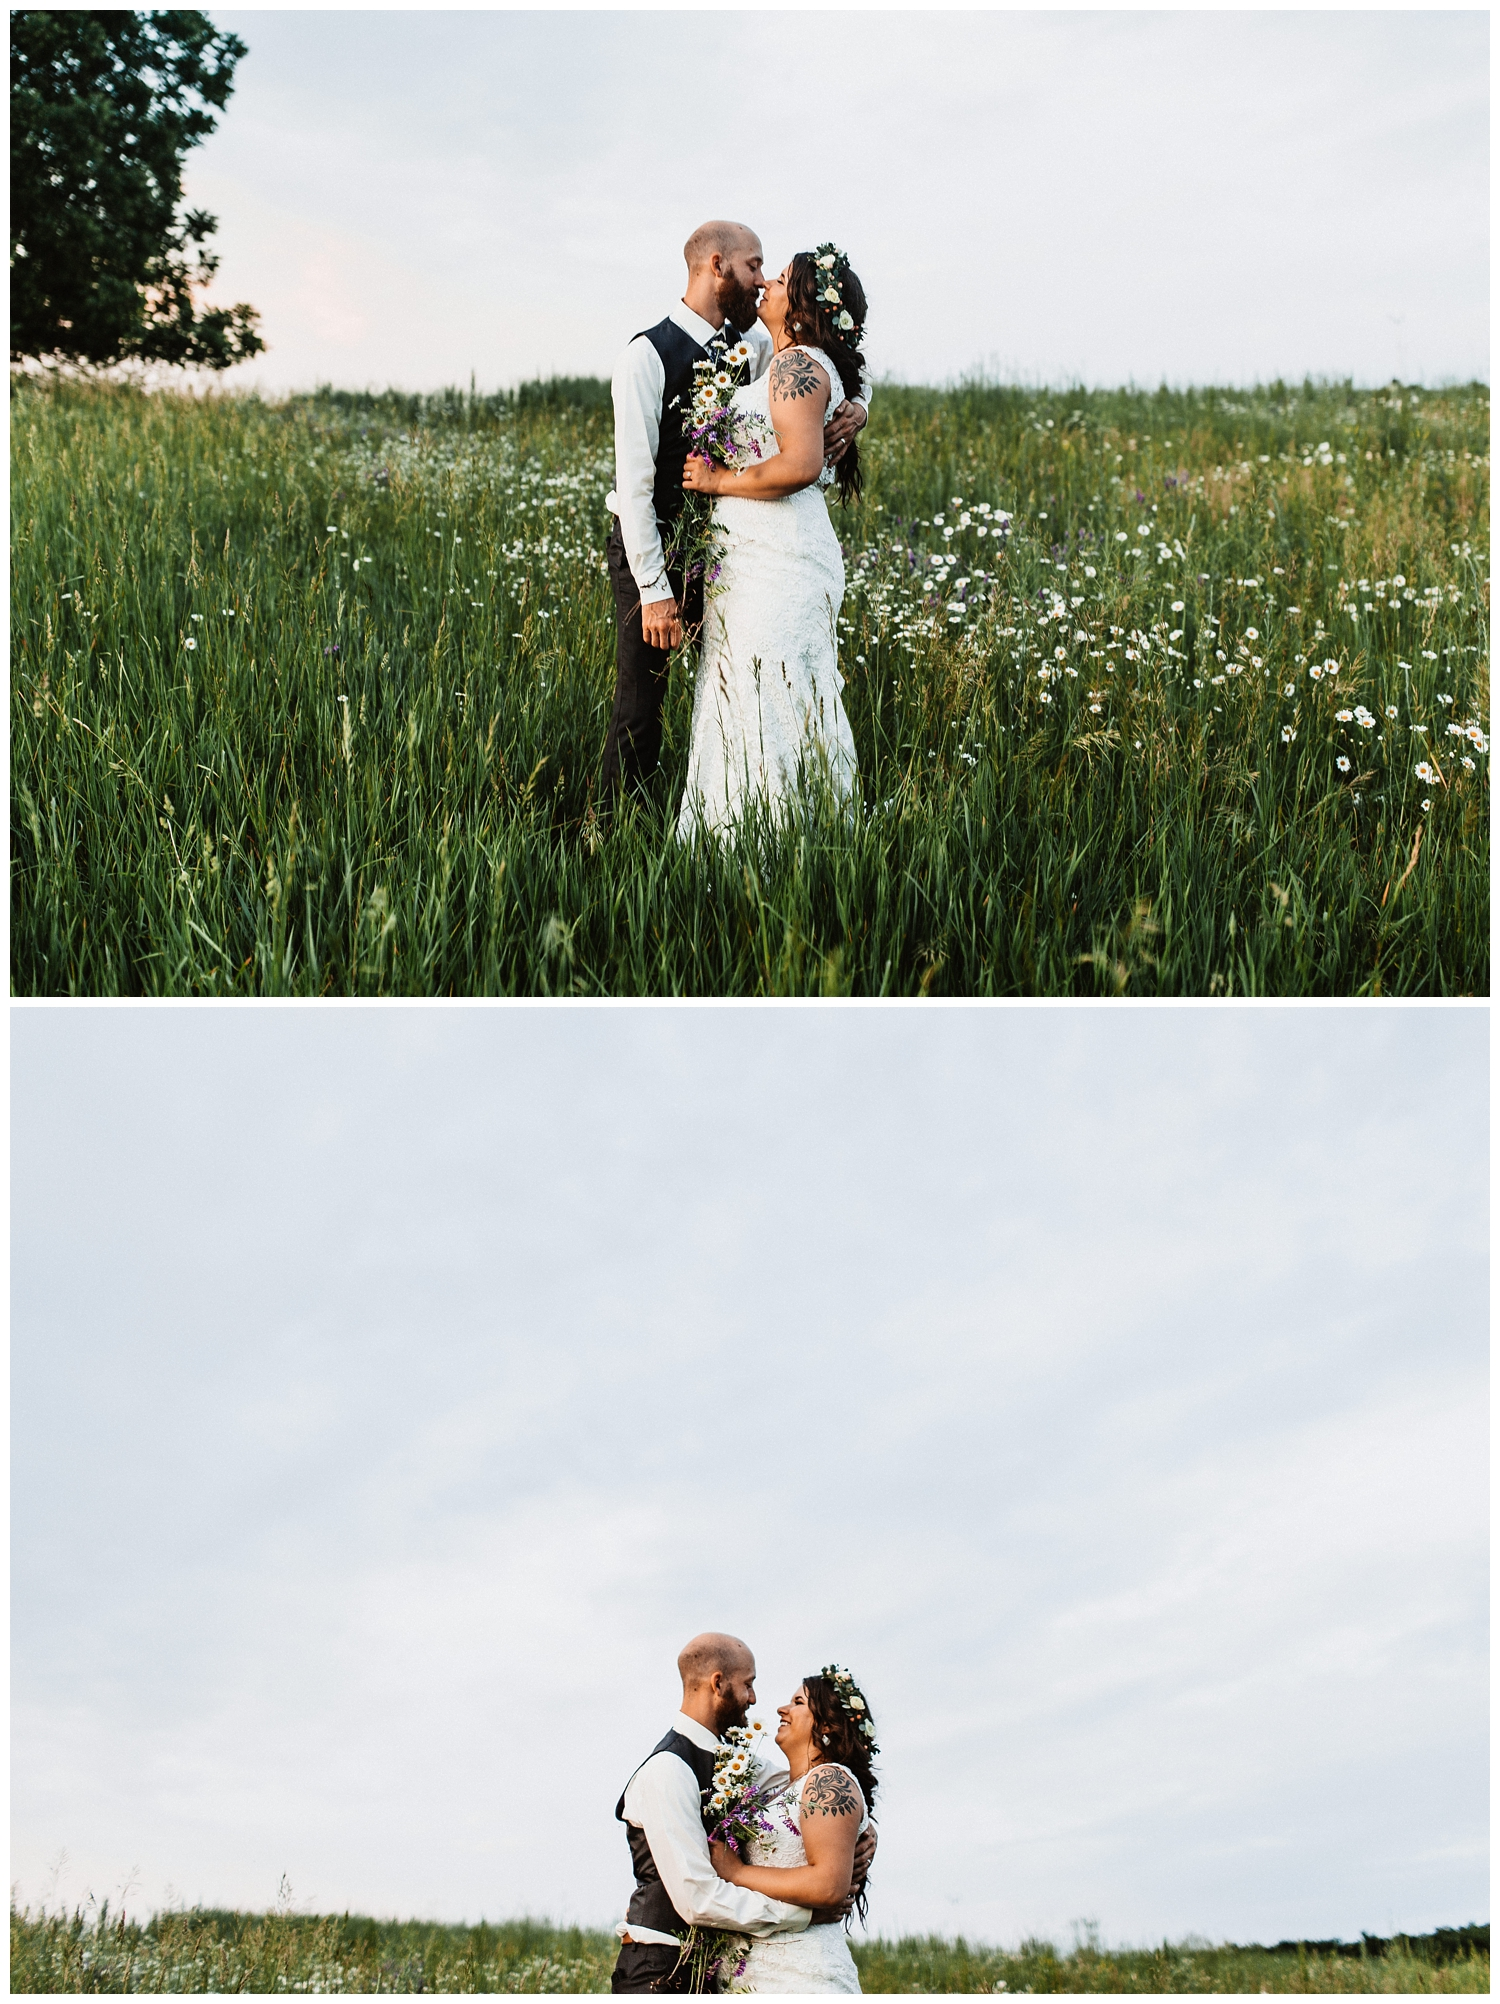 Northern_Michigan_Vineyard_Wedding_Nashville_Wedding_Photographer0116.jpg